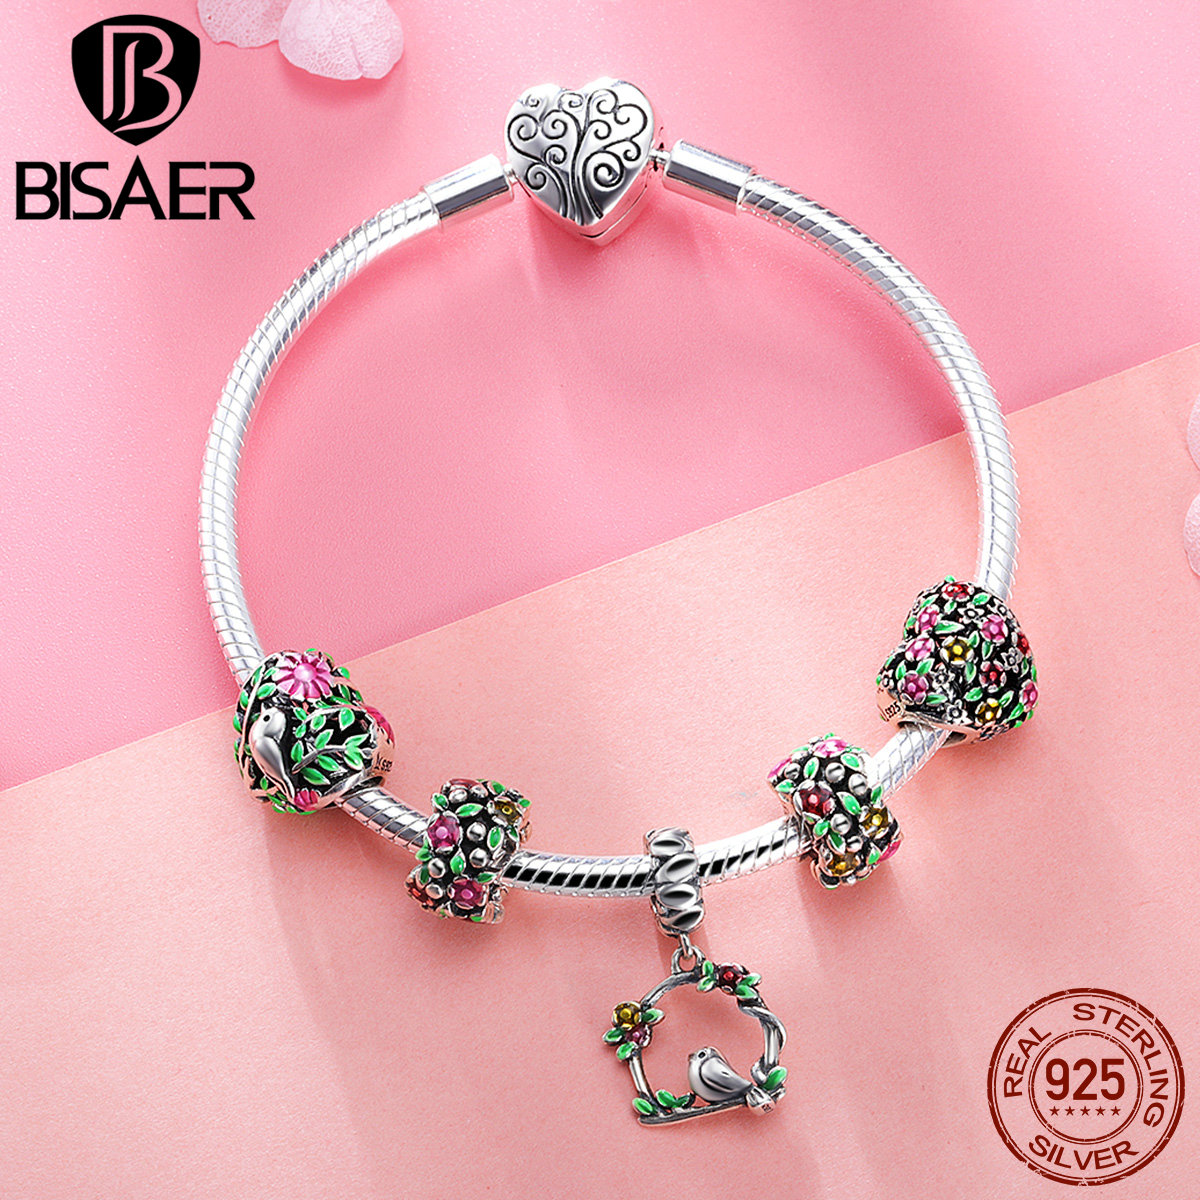 BISAER 2018 New 925 Sterling Silver Bird In Bush Heart Green Summer Collection Charm Bracelet Female Brand Beads Bangle GXB804 mysterious green head heart bracelet